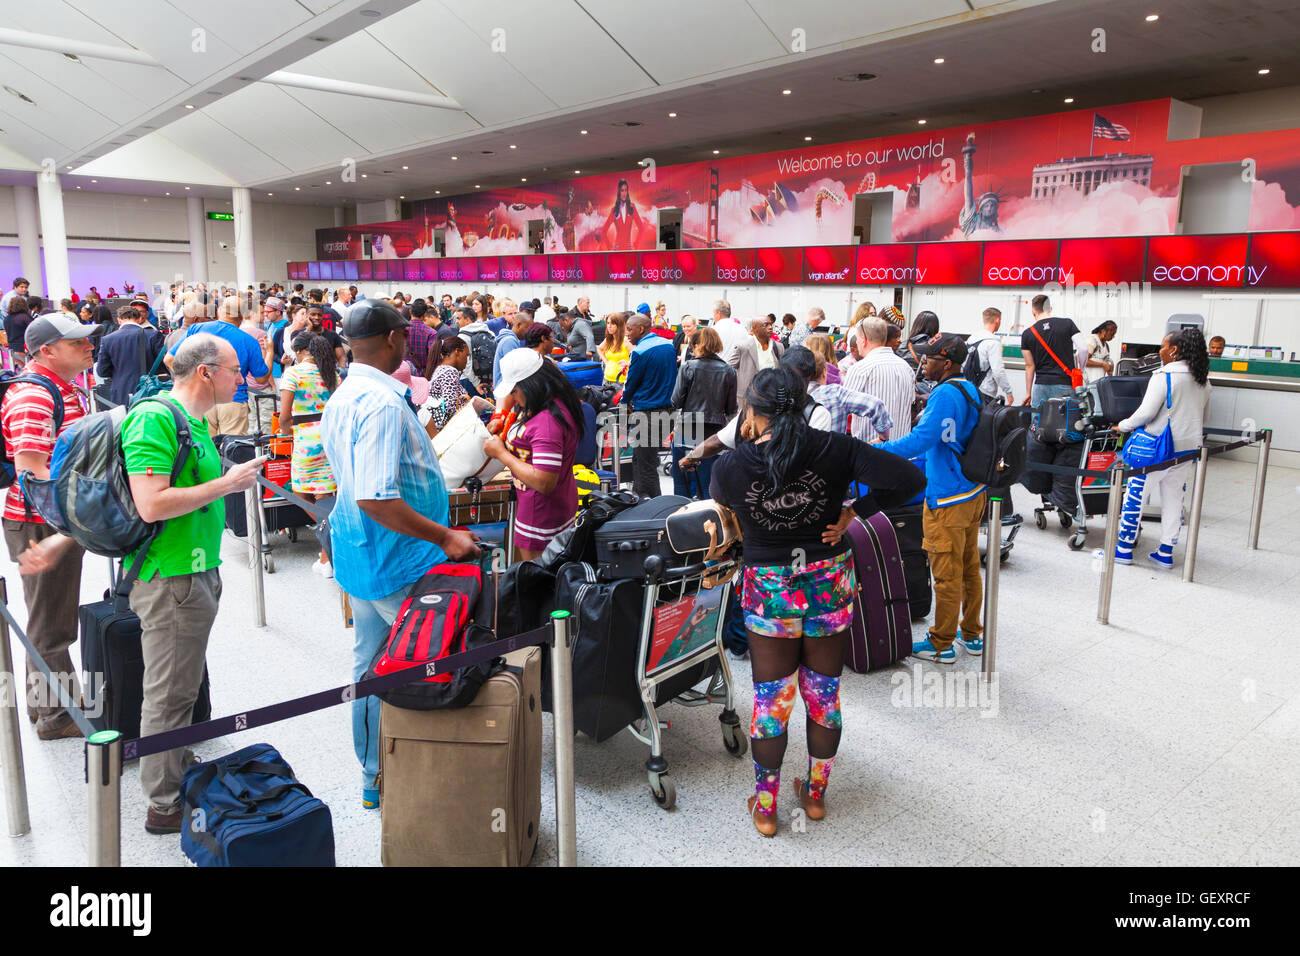 Long queue of passengers waiting to check in at Virgin